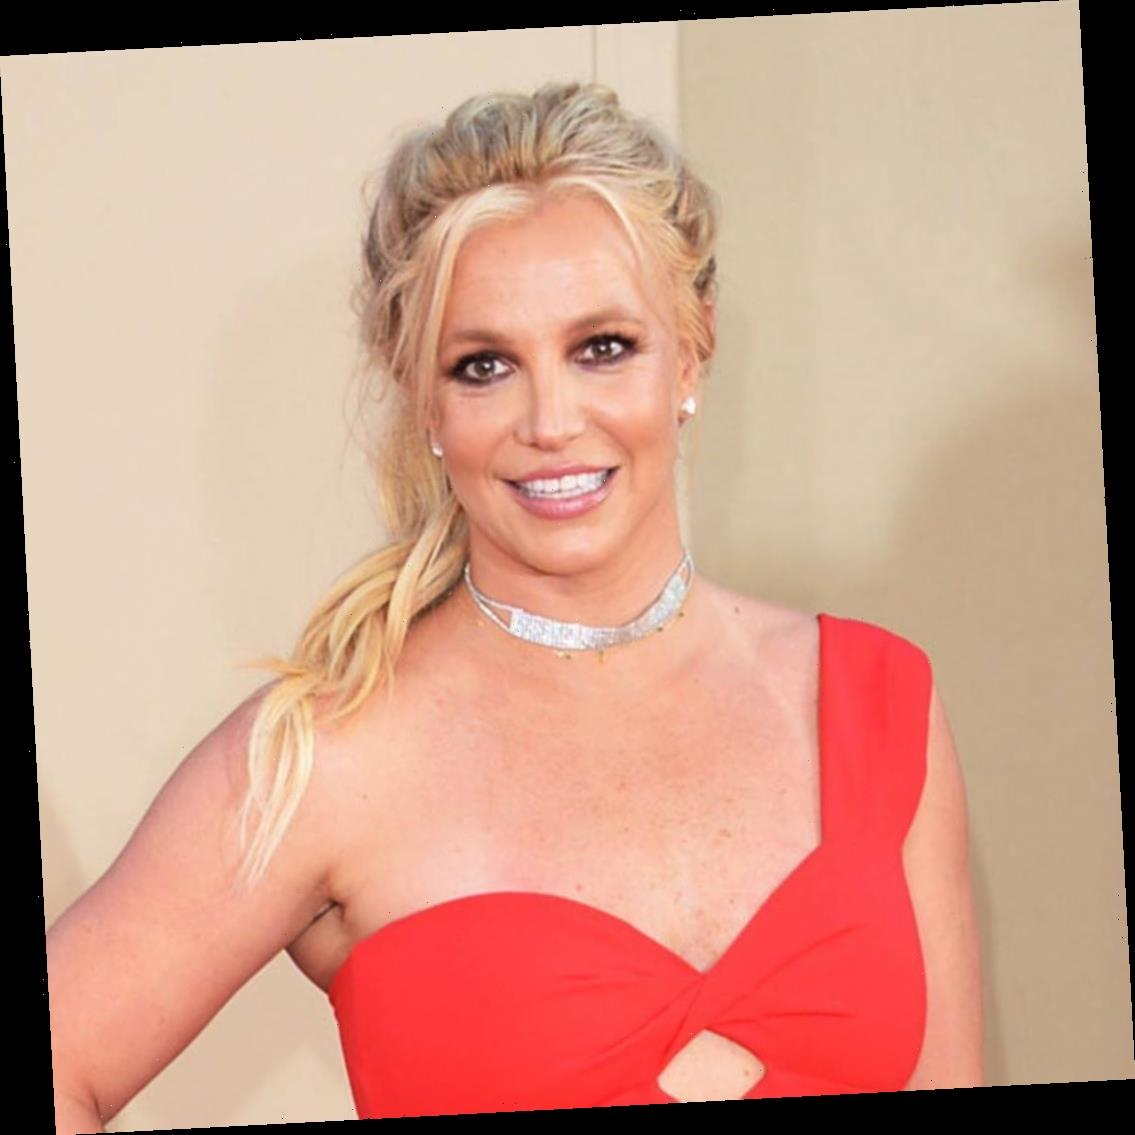 A Timeline of the Drama Surrounding Britney Spears' Conservatorship and Well-Being